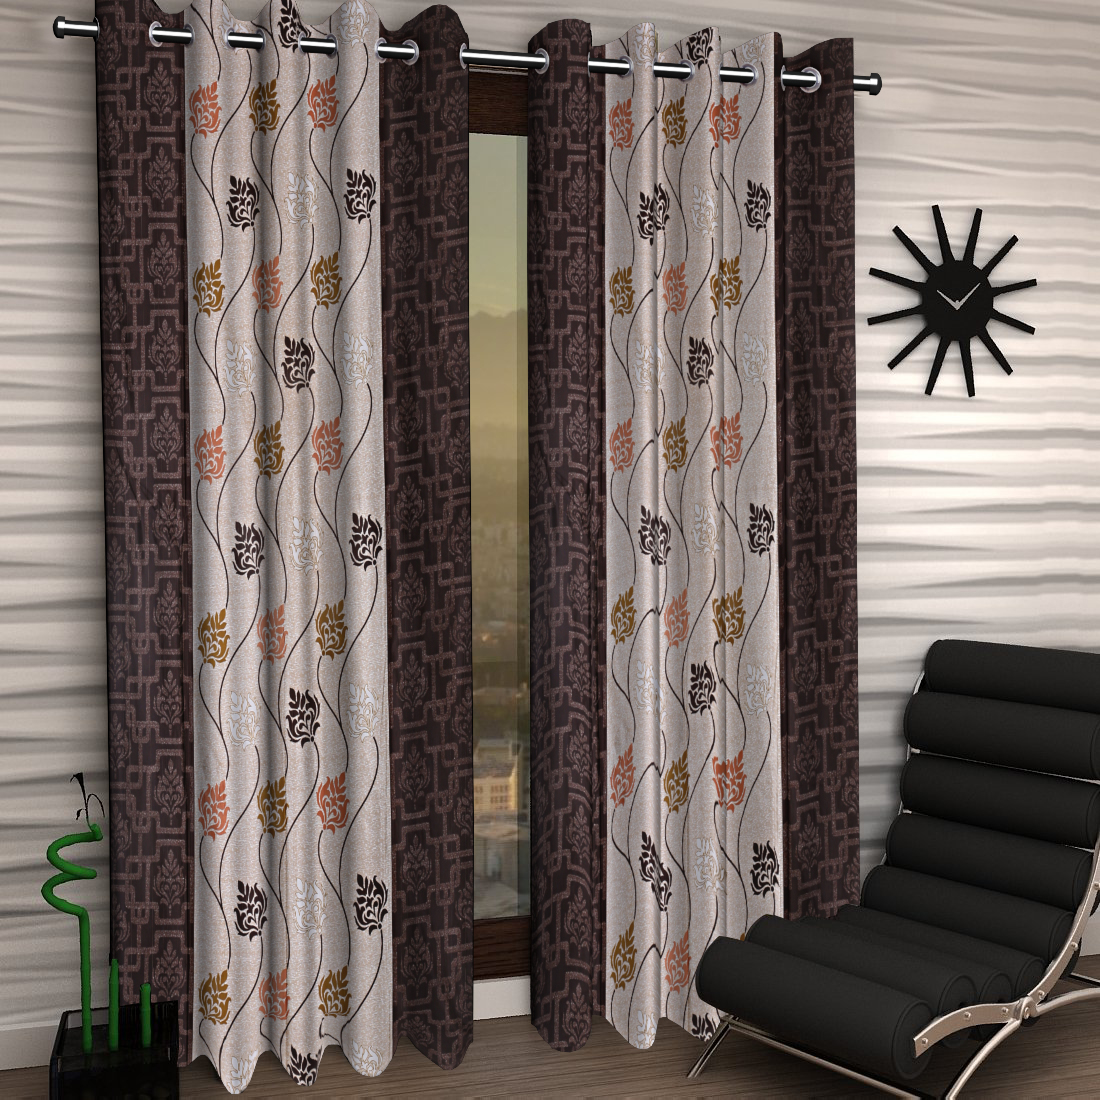 Kuber Industries Floral Design 4 Pieces Polyester Eyelet Door Curtain 7 Feet (Coffee)-CTKTC14255